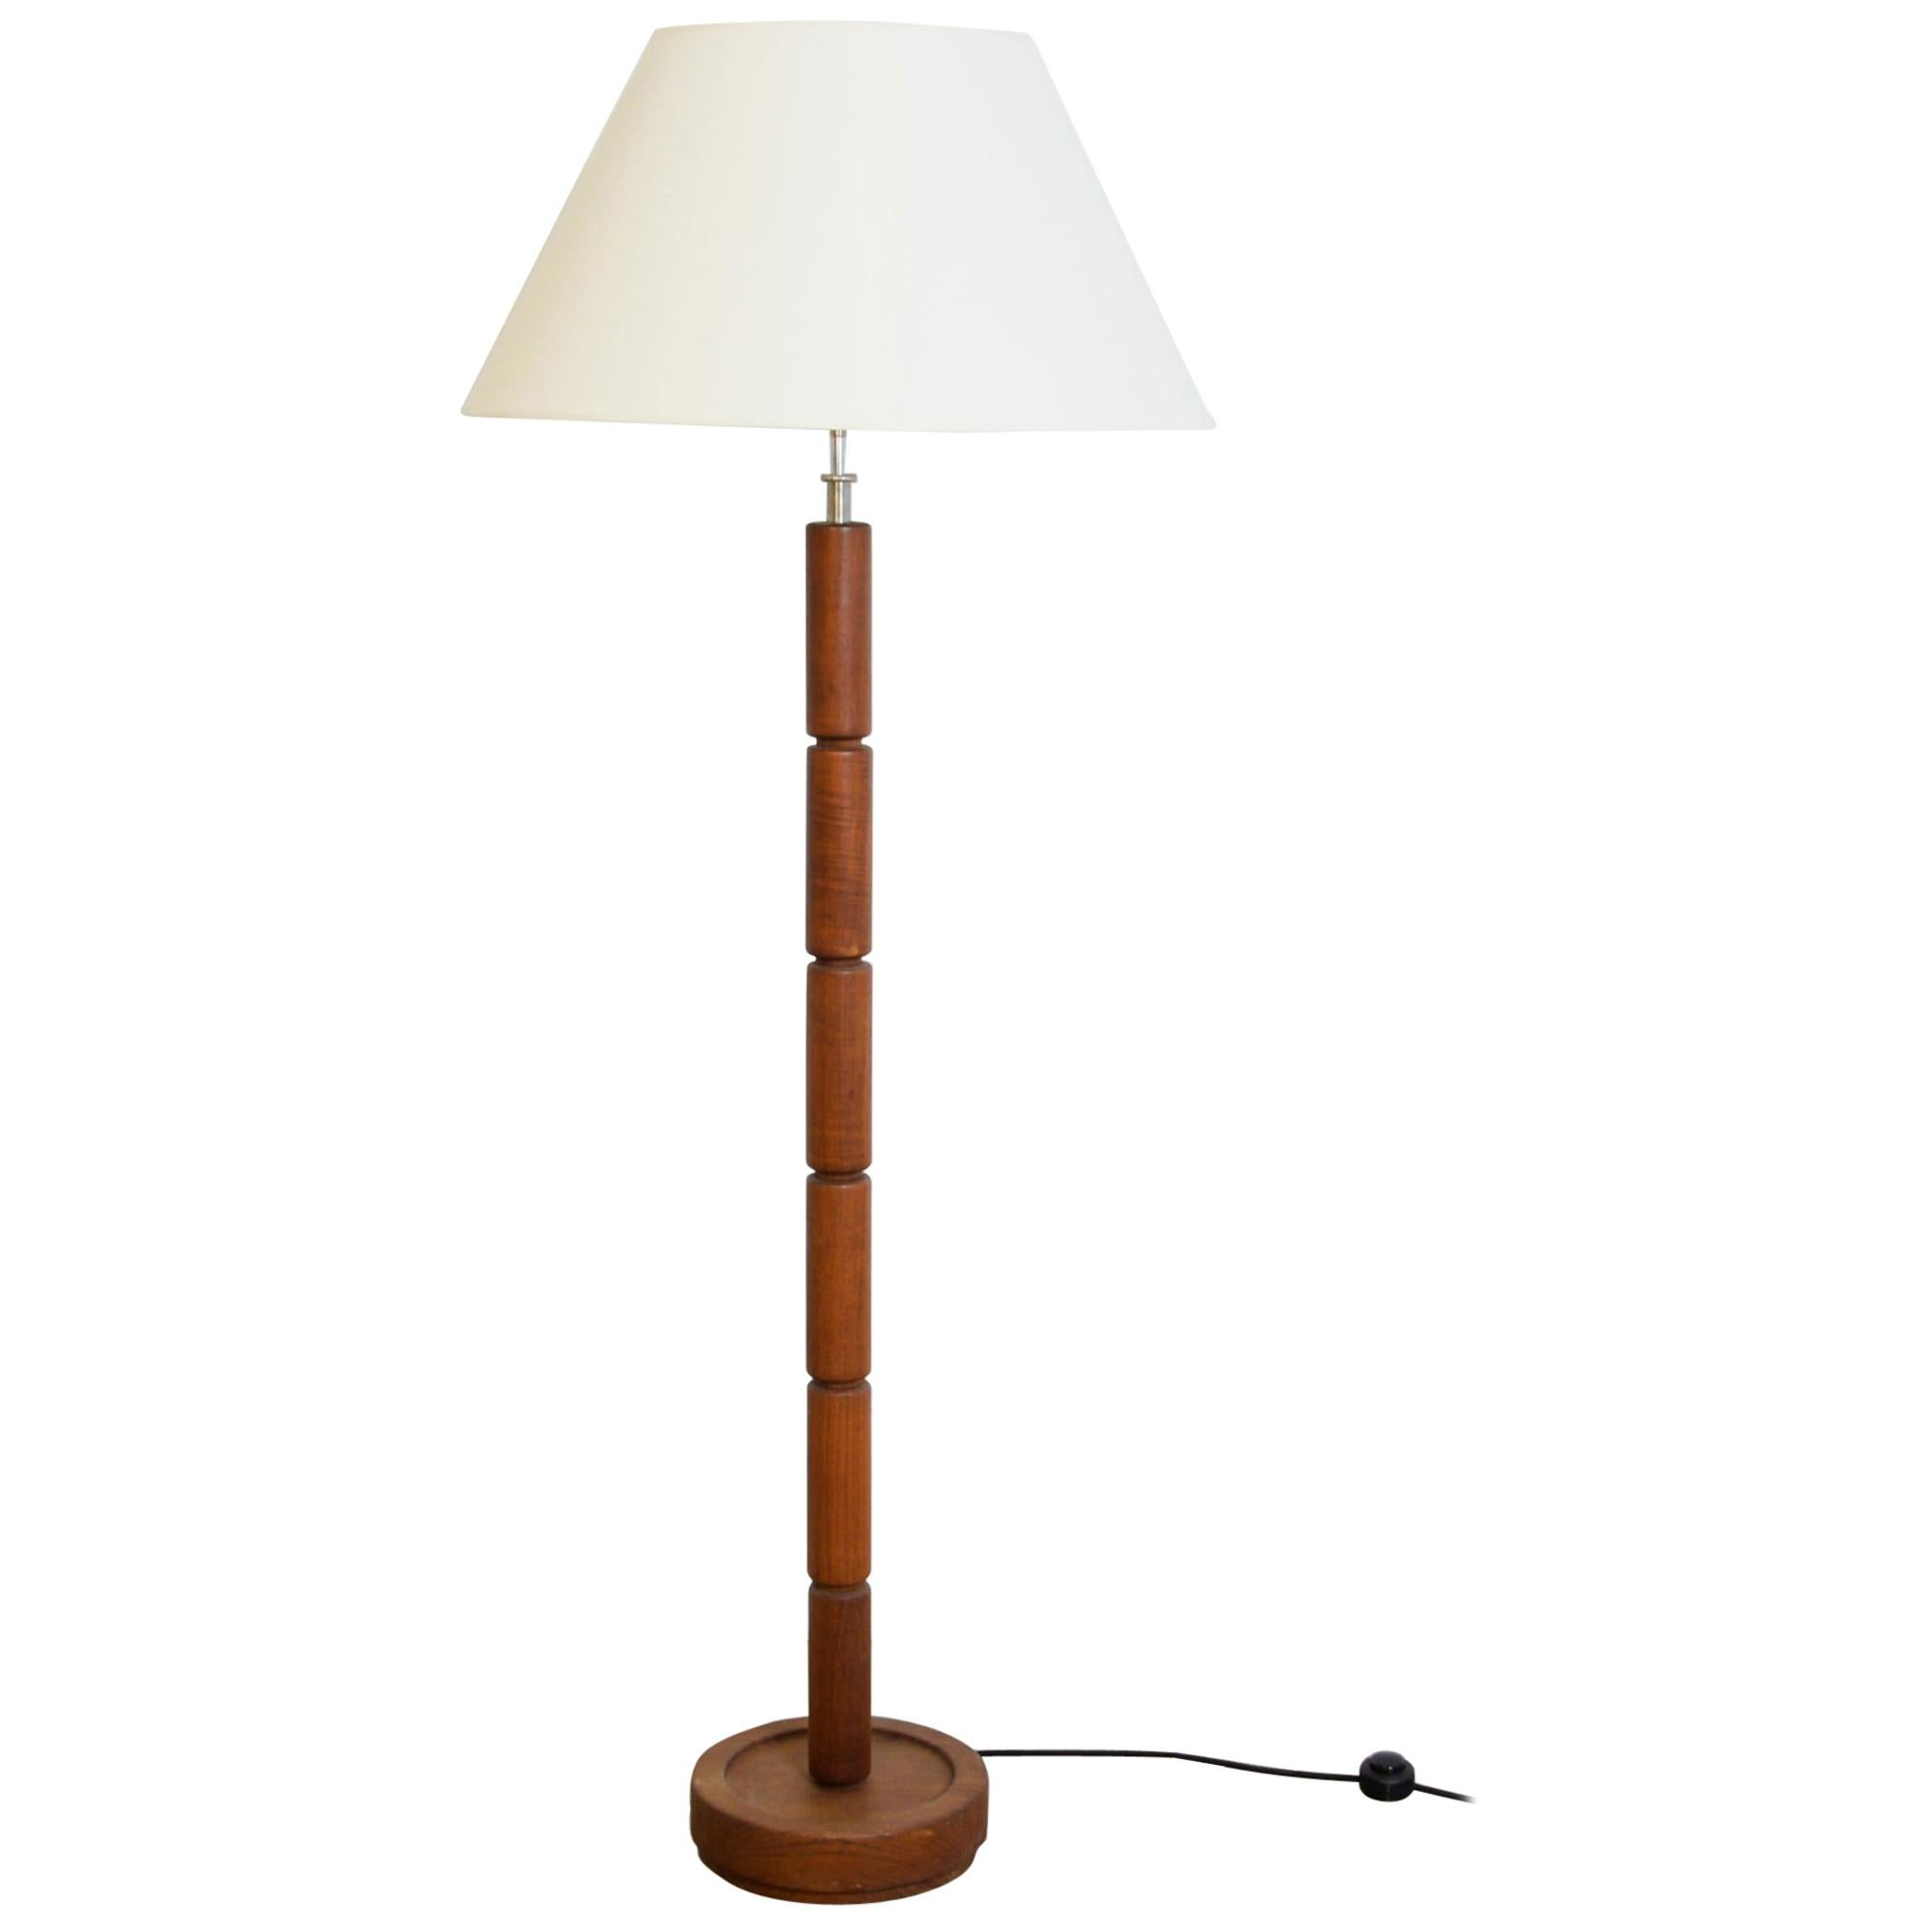 1960s Teak Danish Floor Lamp